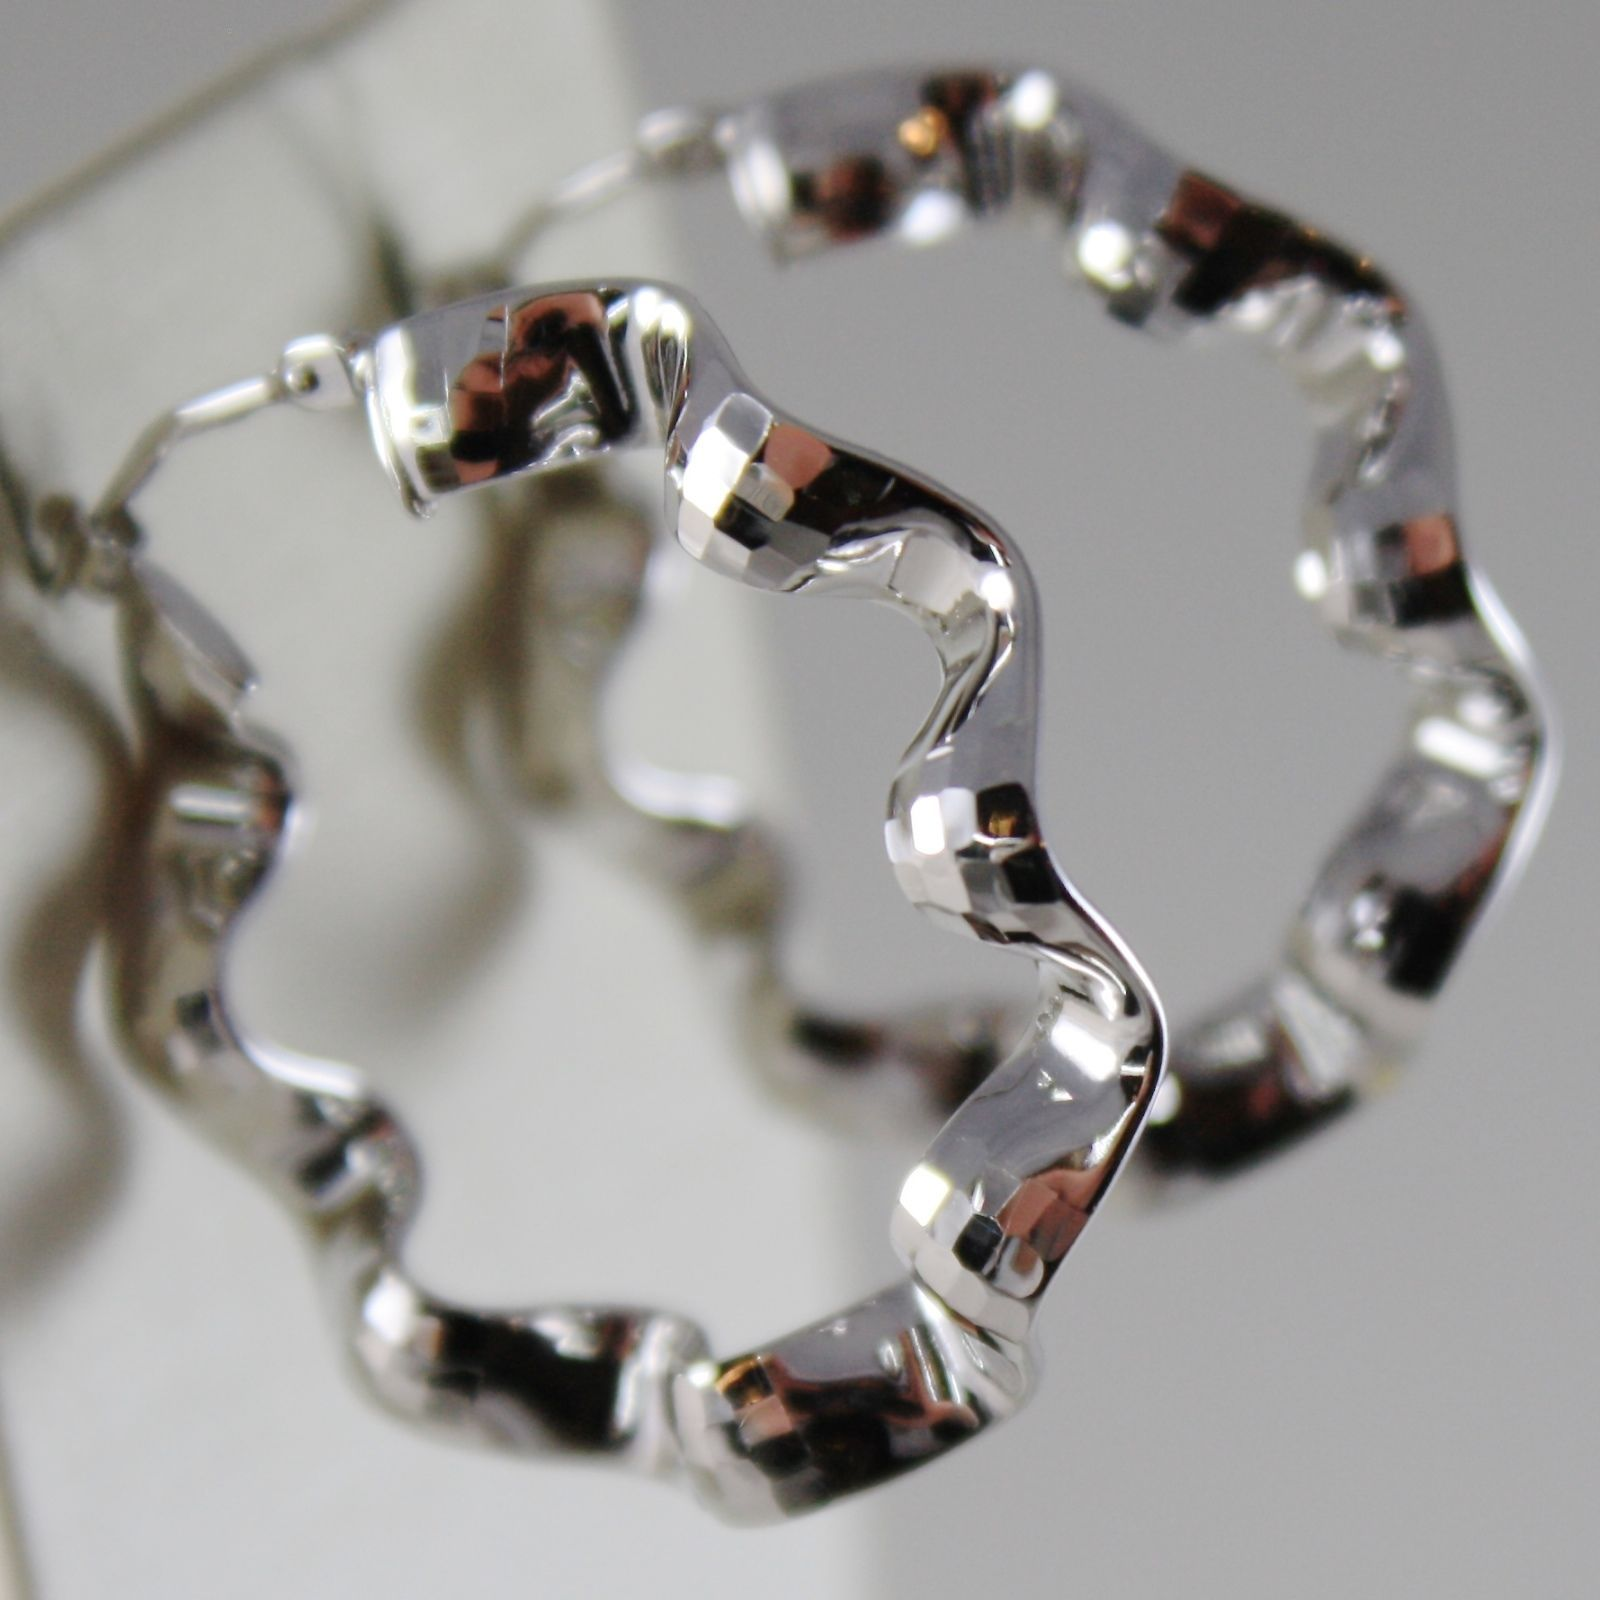 18K WHITE GOLD EARRINGS CIRCLE HOOP 32 MM, ONDULATE FACETED BRIGHT MADE IN ITALY